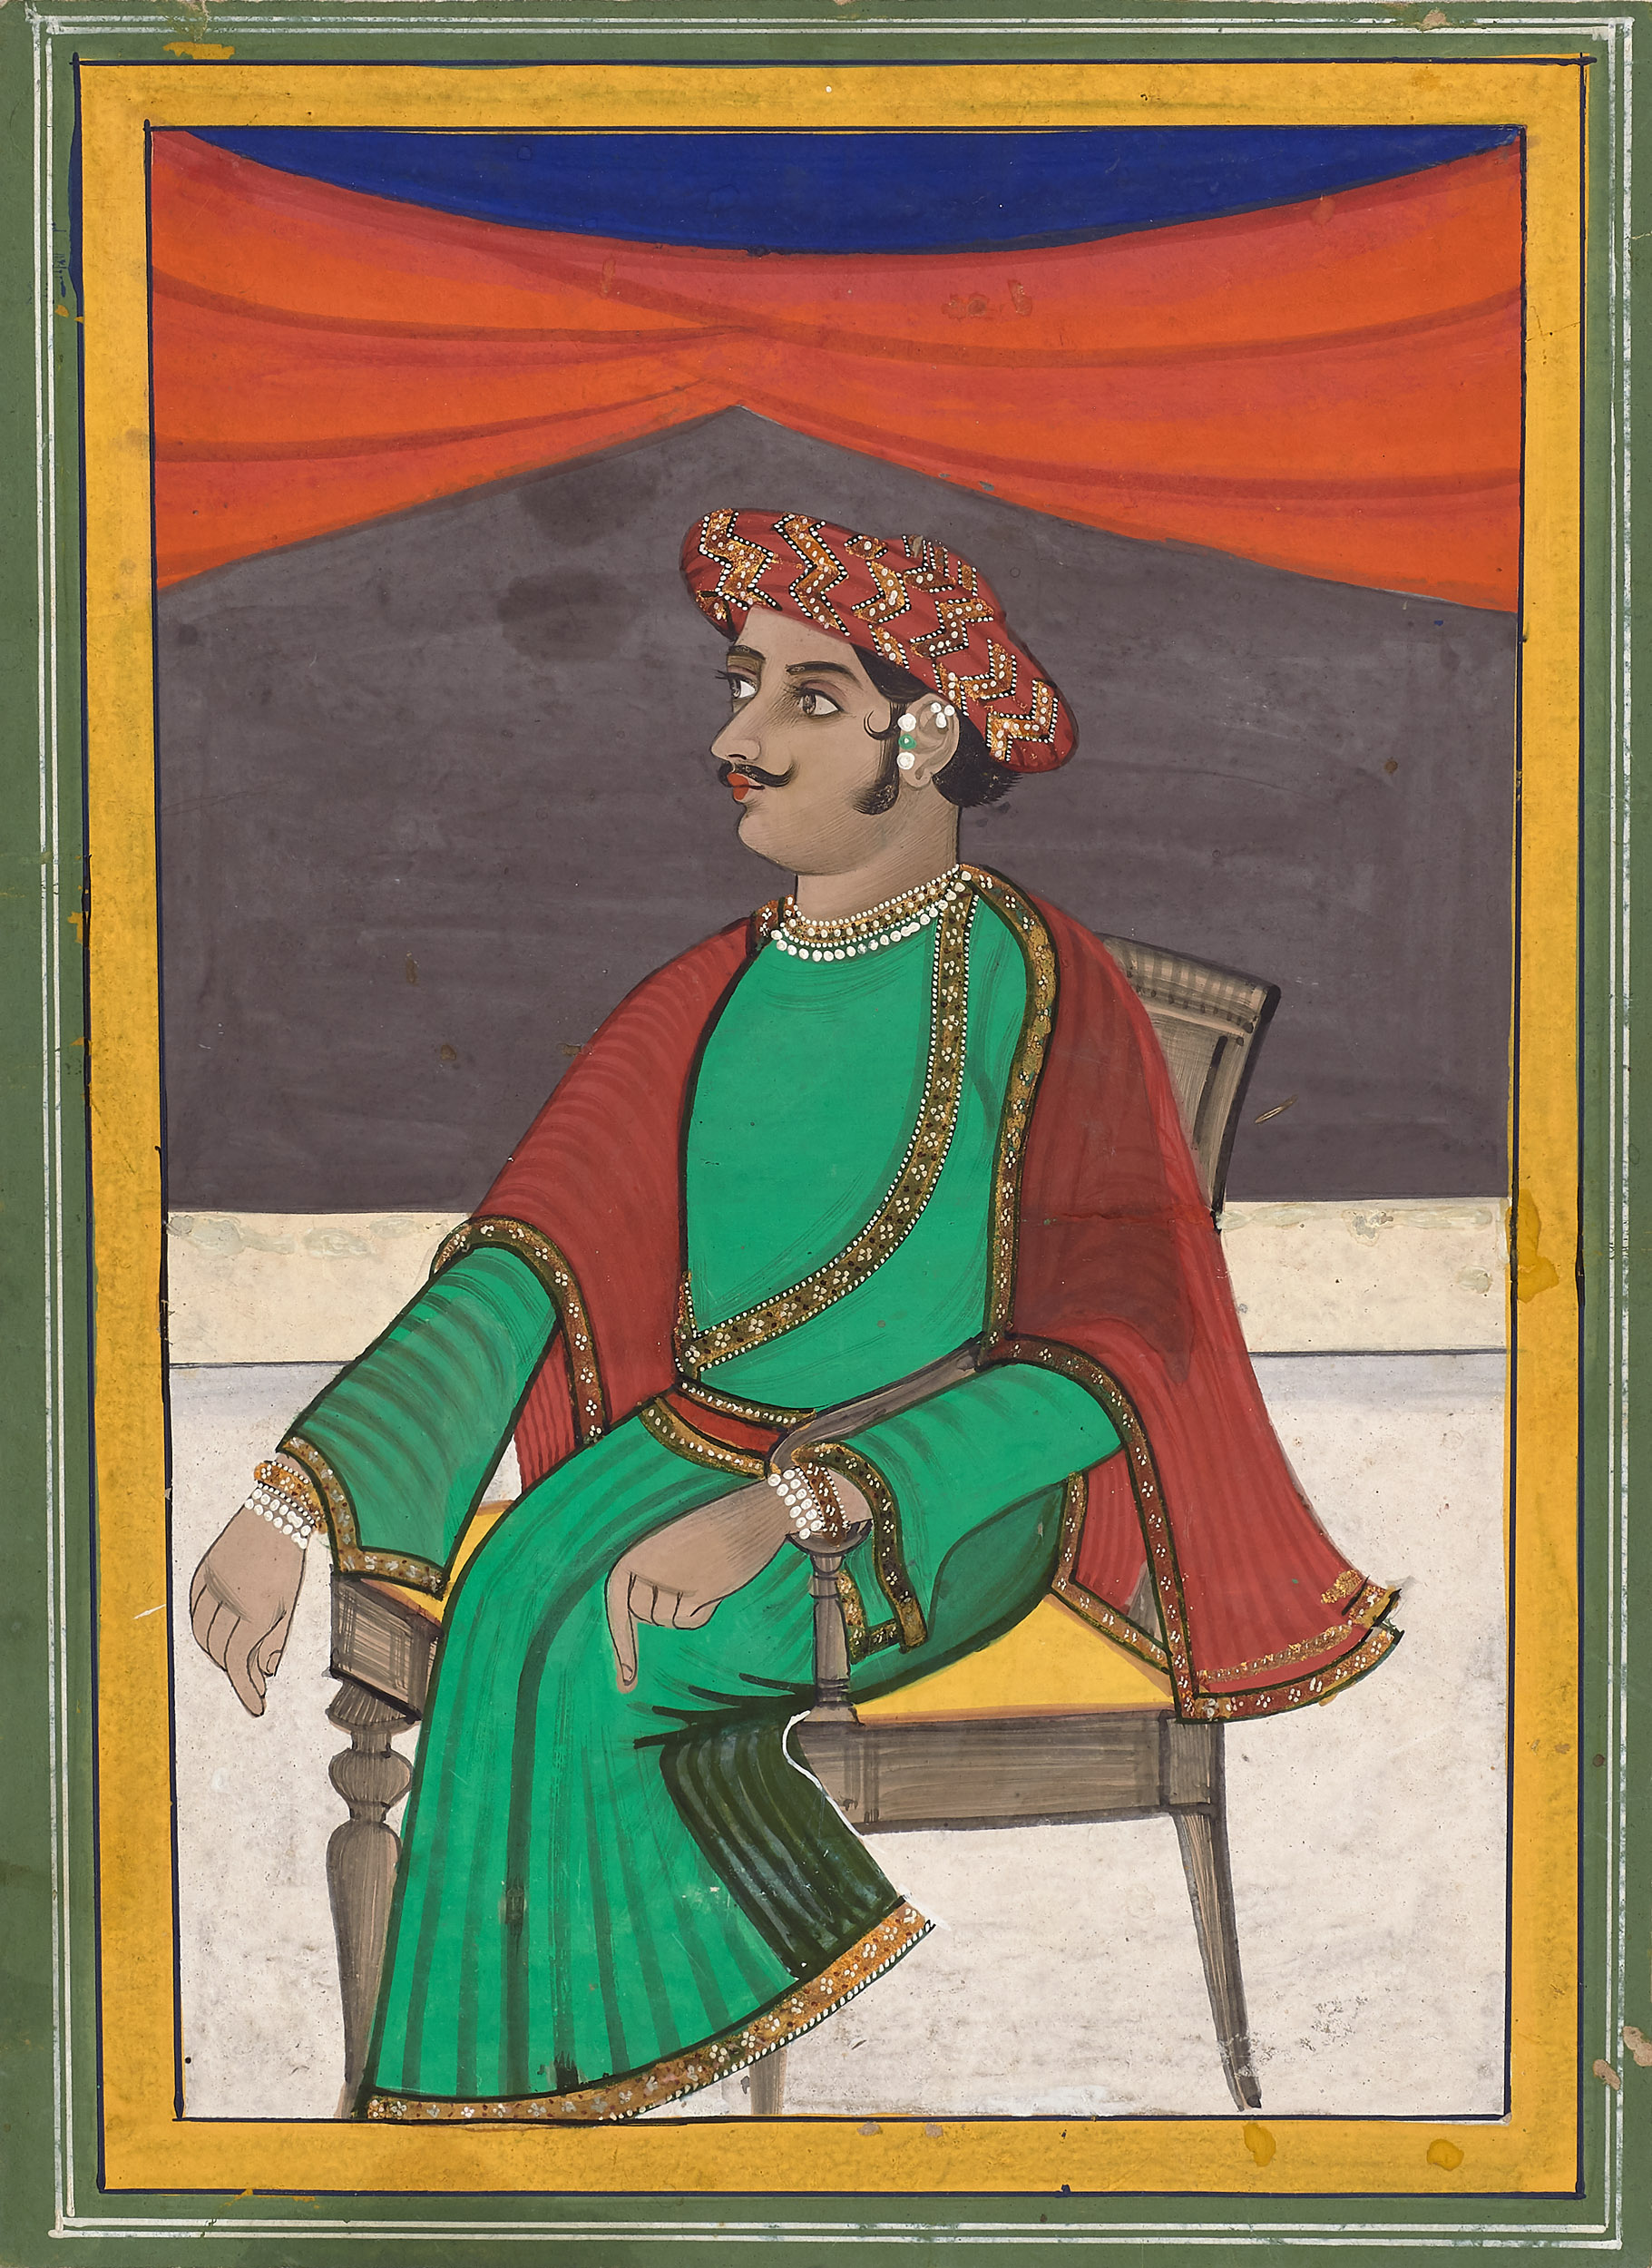 A Bengali Man Seated in a Chair